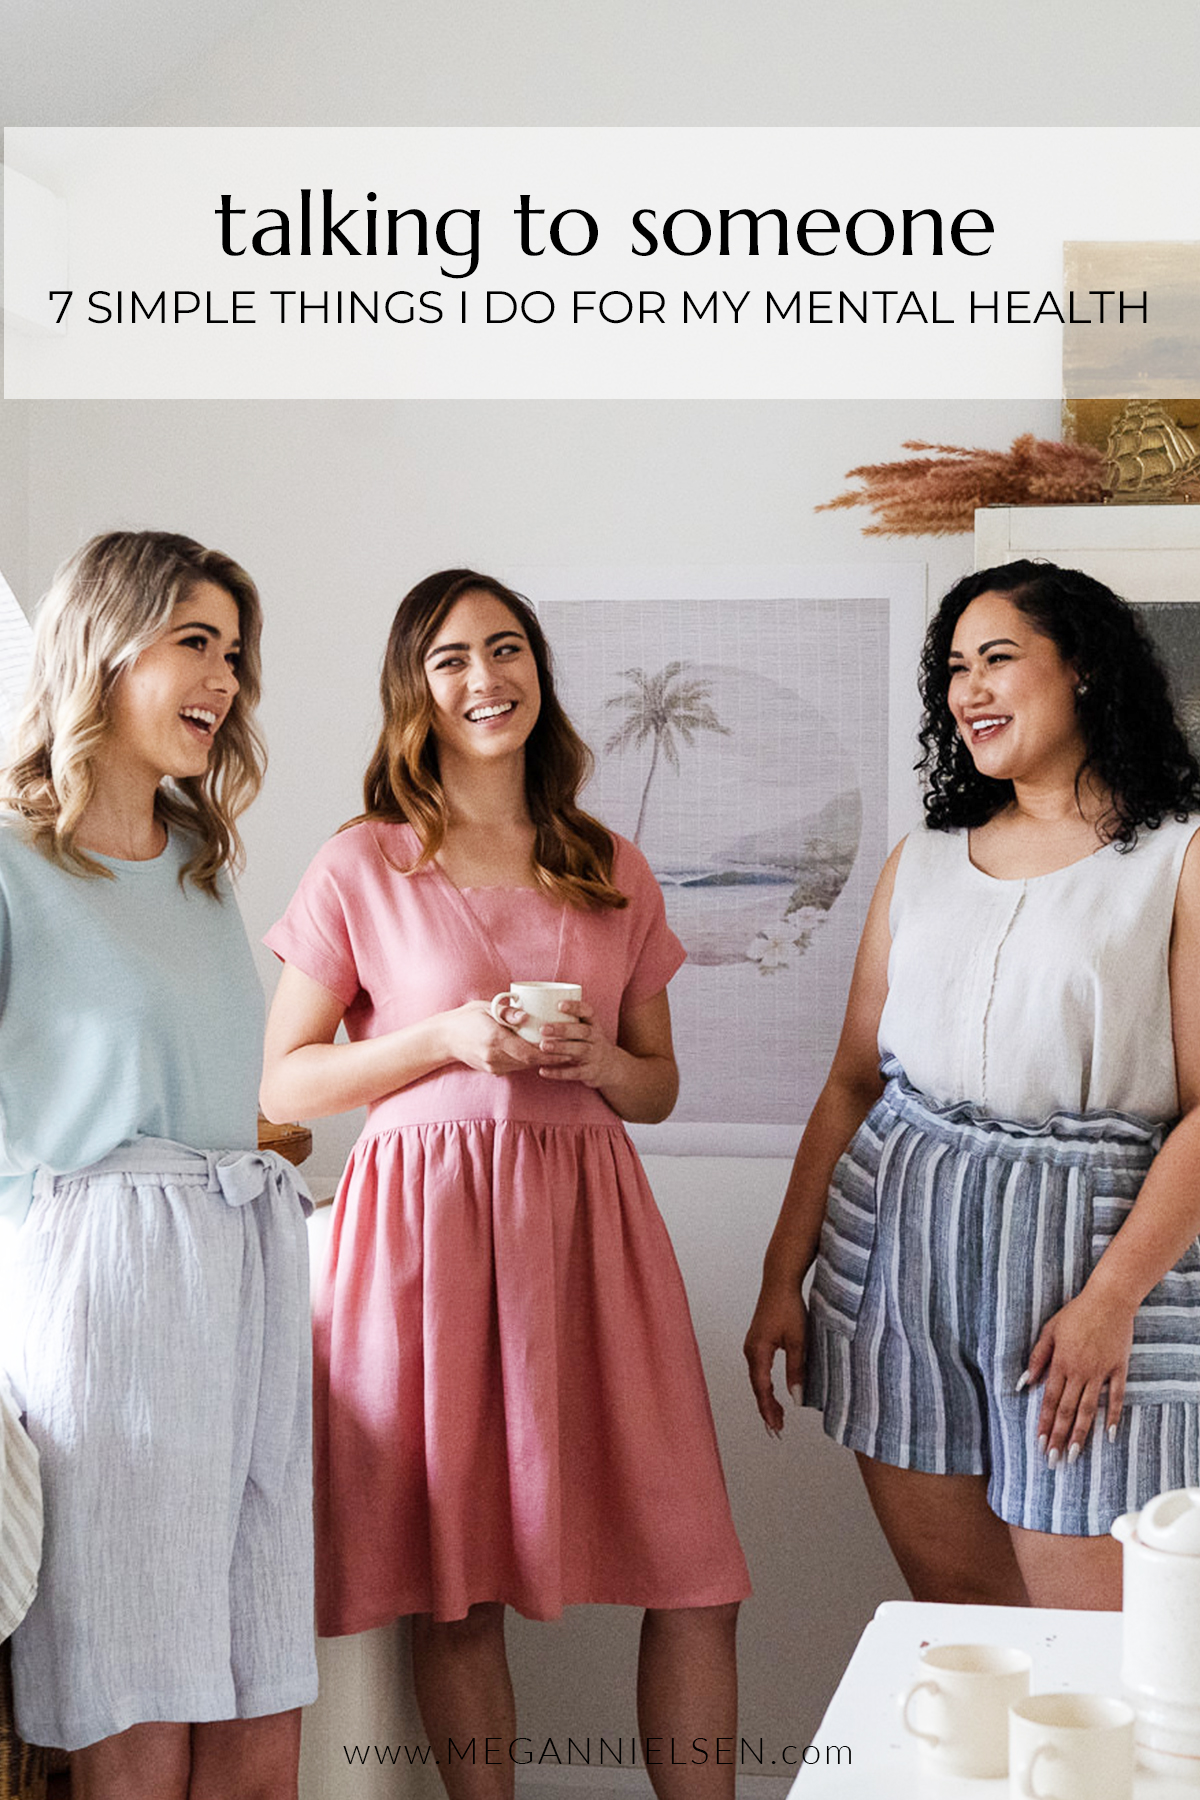 7 Simple Things I Do For My Mental Health | Talking To Someone